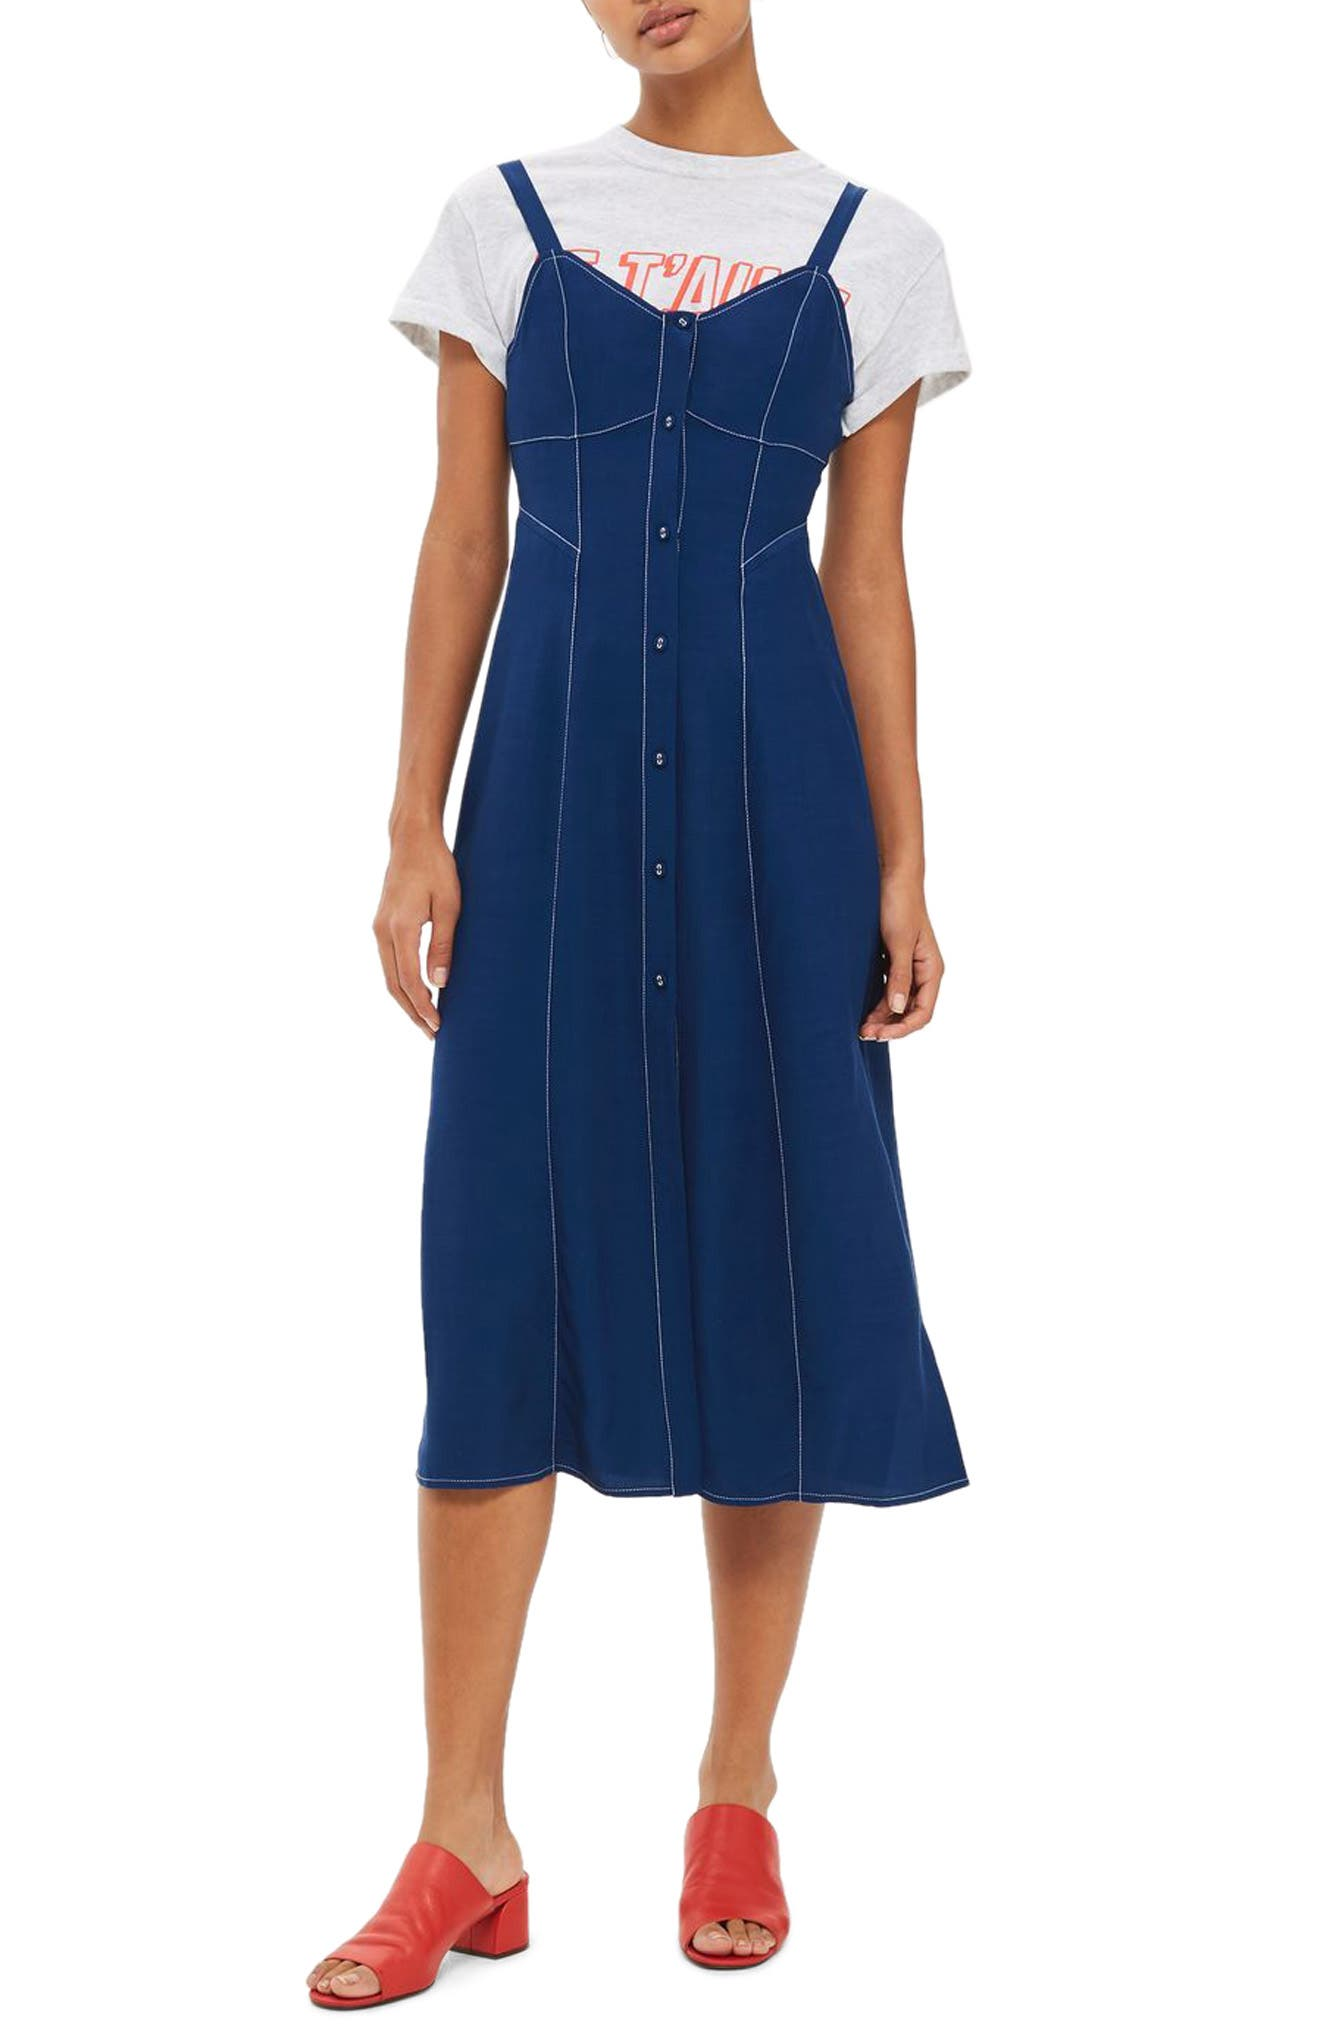 Topshop Topstitch Corset Midi Dress